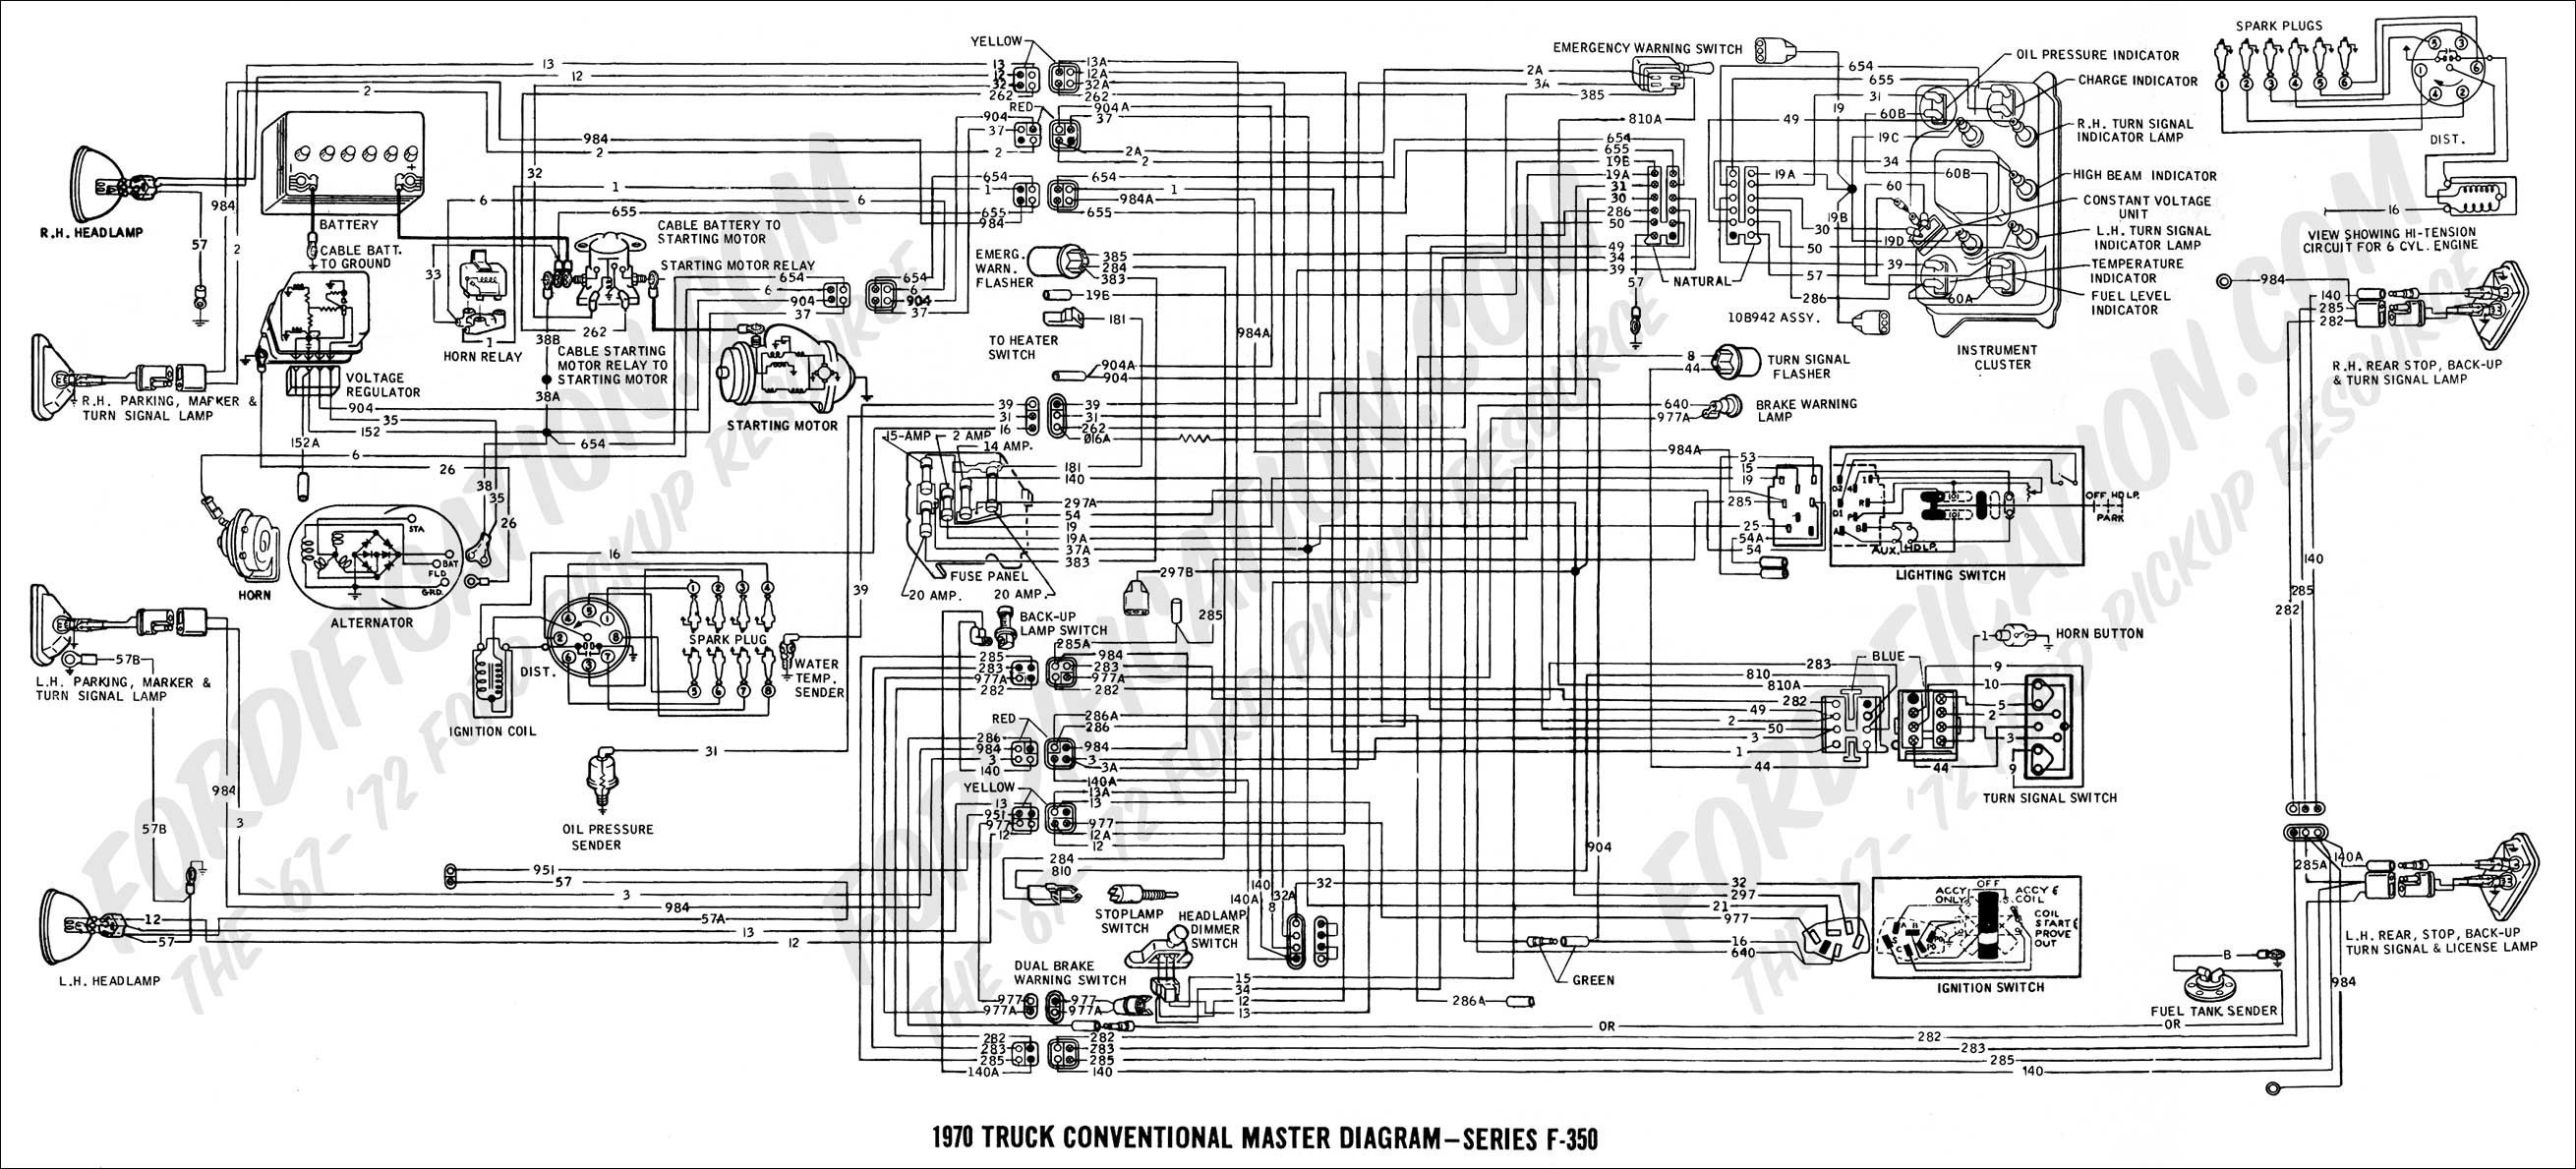 1999 ford Expedition Engine Diagram 2 2001 ford F450 Wiring Diagram Another Blog About Wiring Diagram • Of 1999 ford Expedition Engine Diagram 2